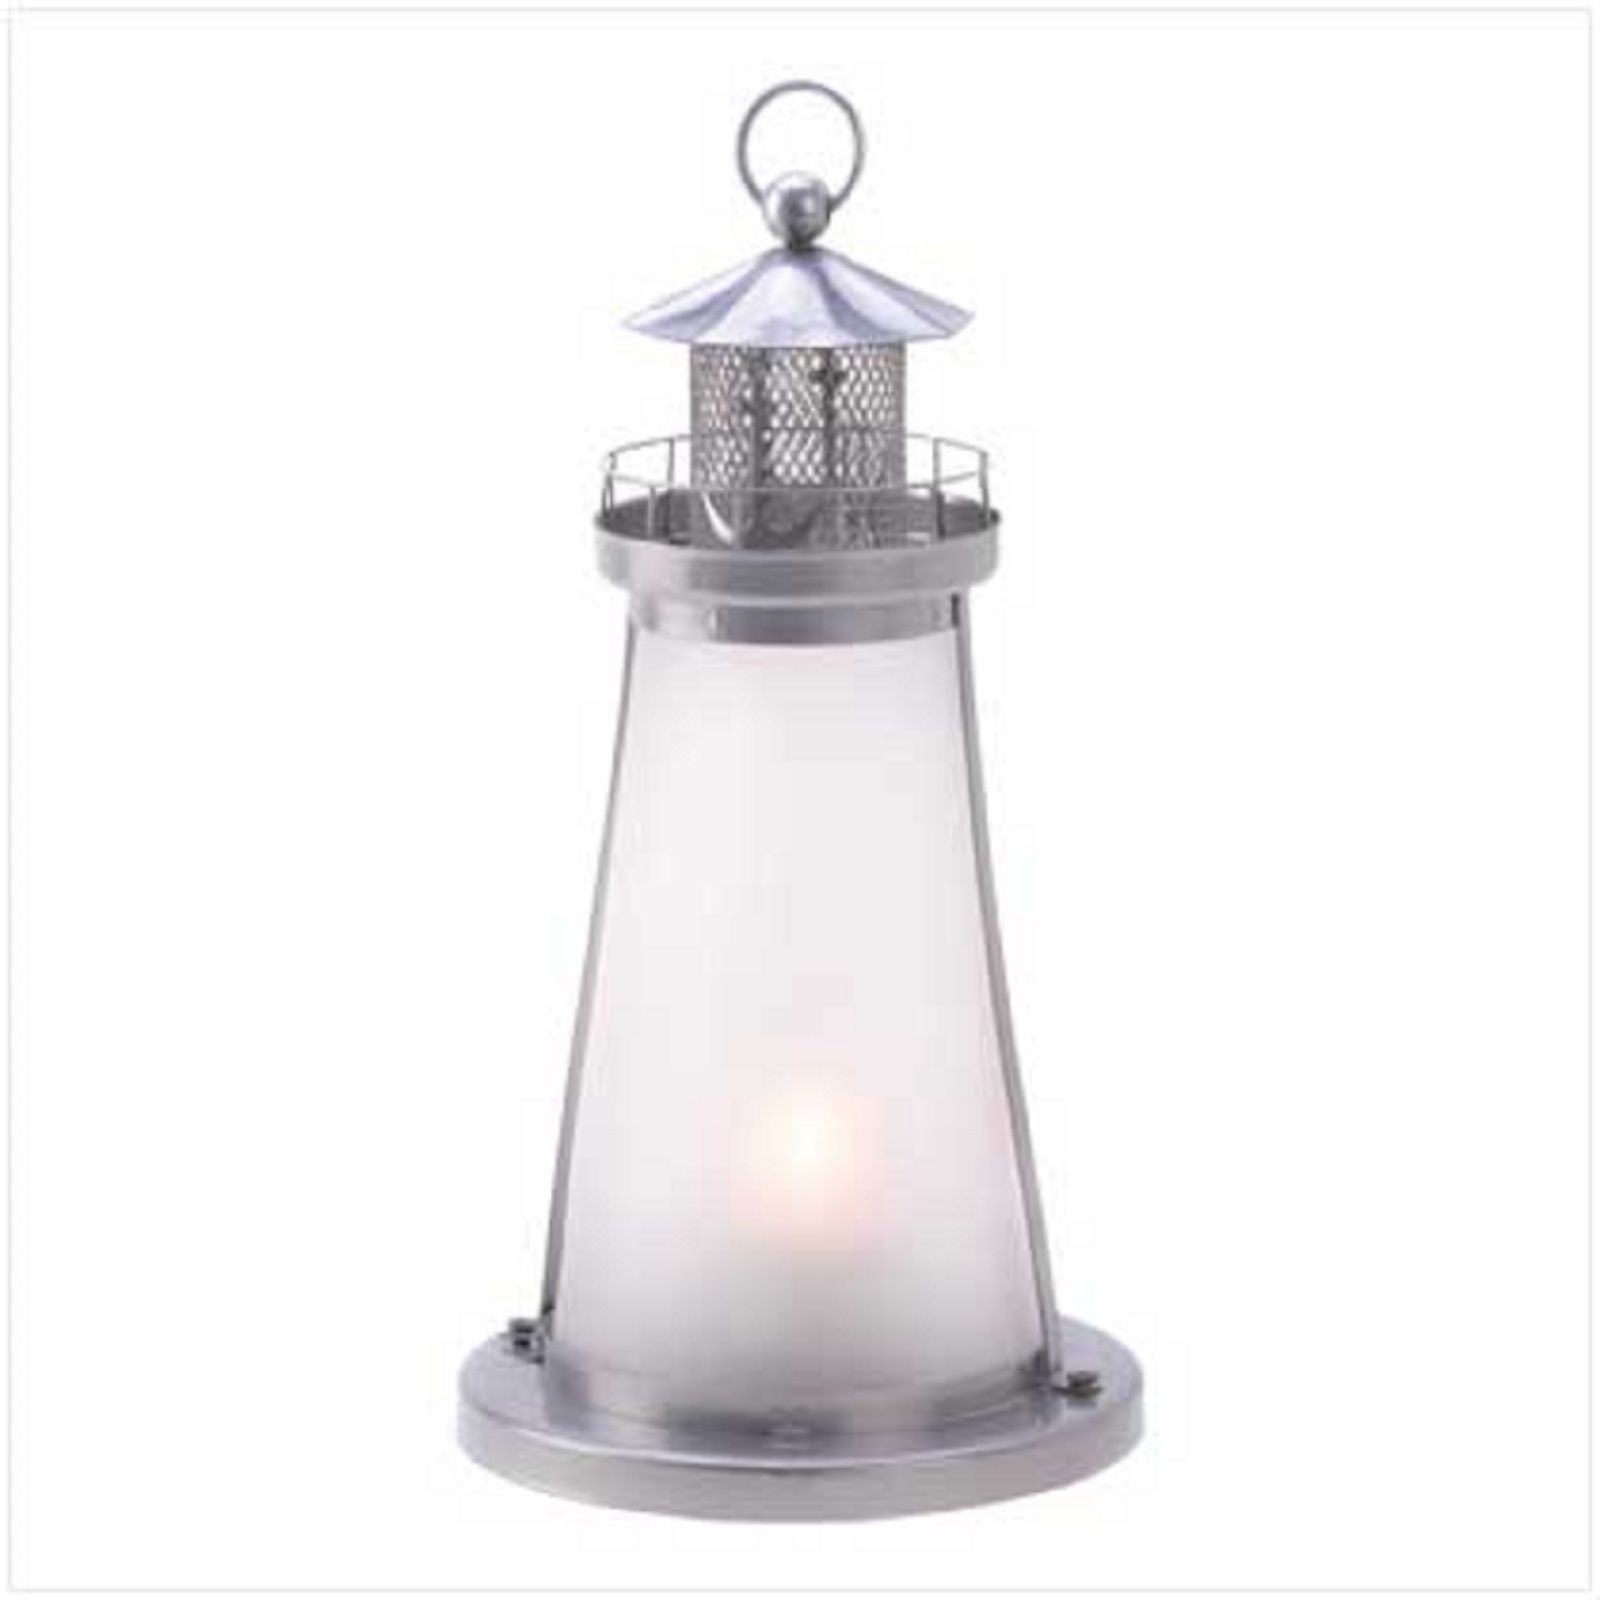 15 WHITE Frosted Lighthouse CANDLE LANTERN Table Decor WEDDING Centerpieces